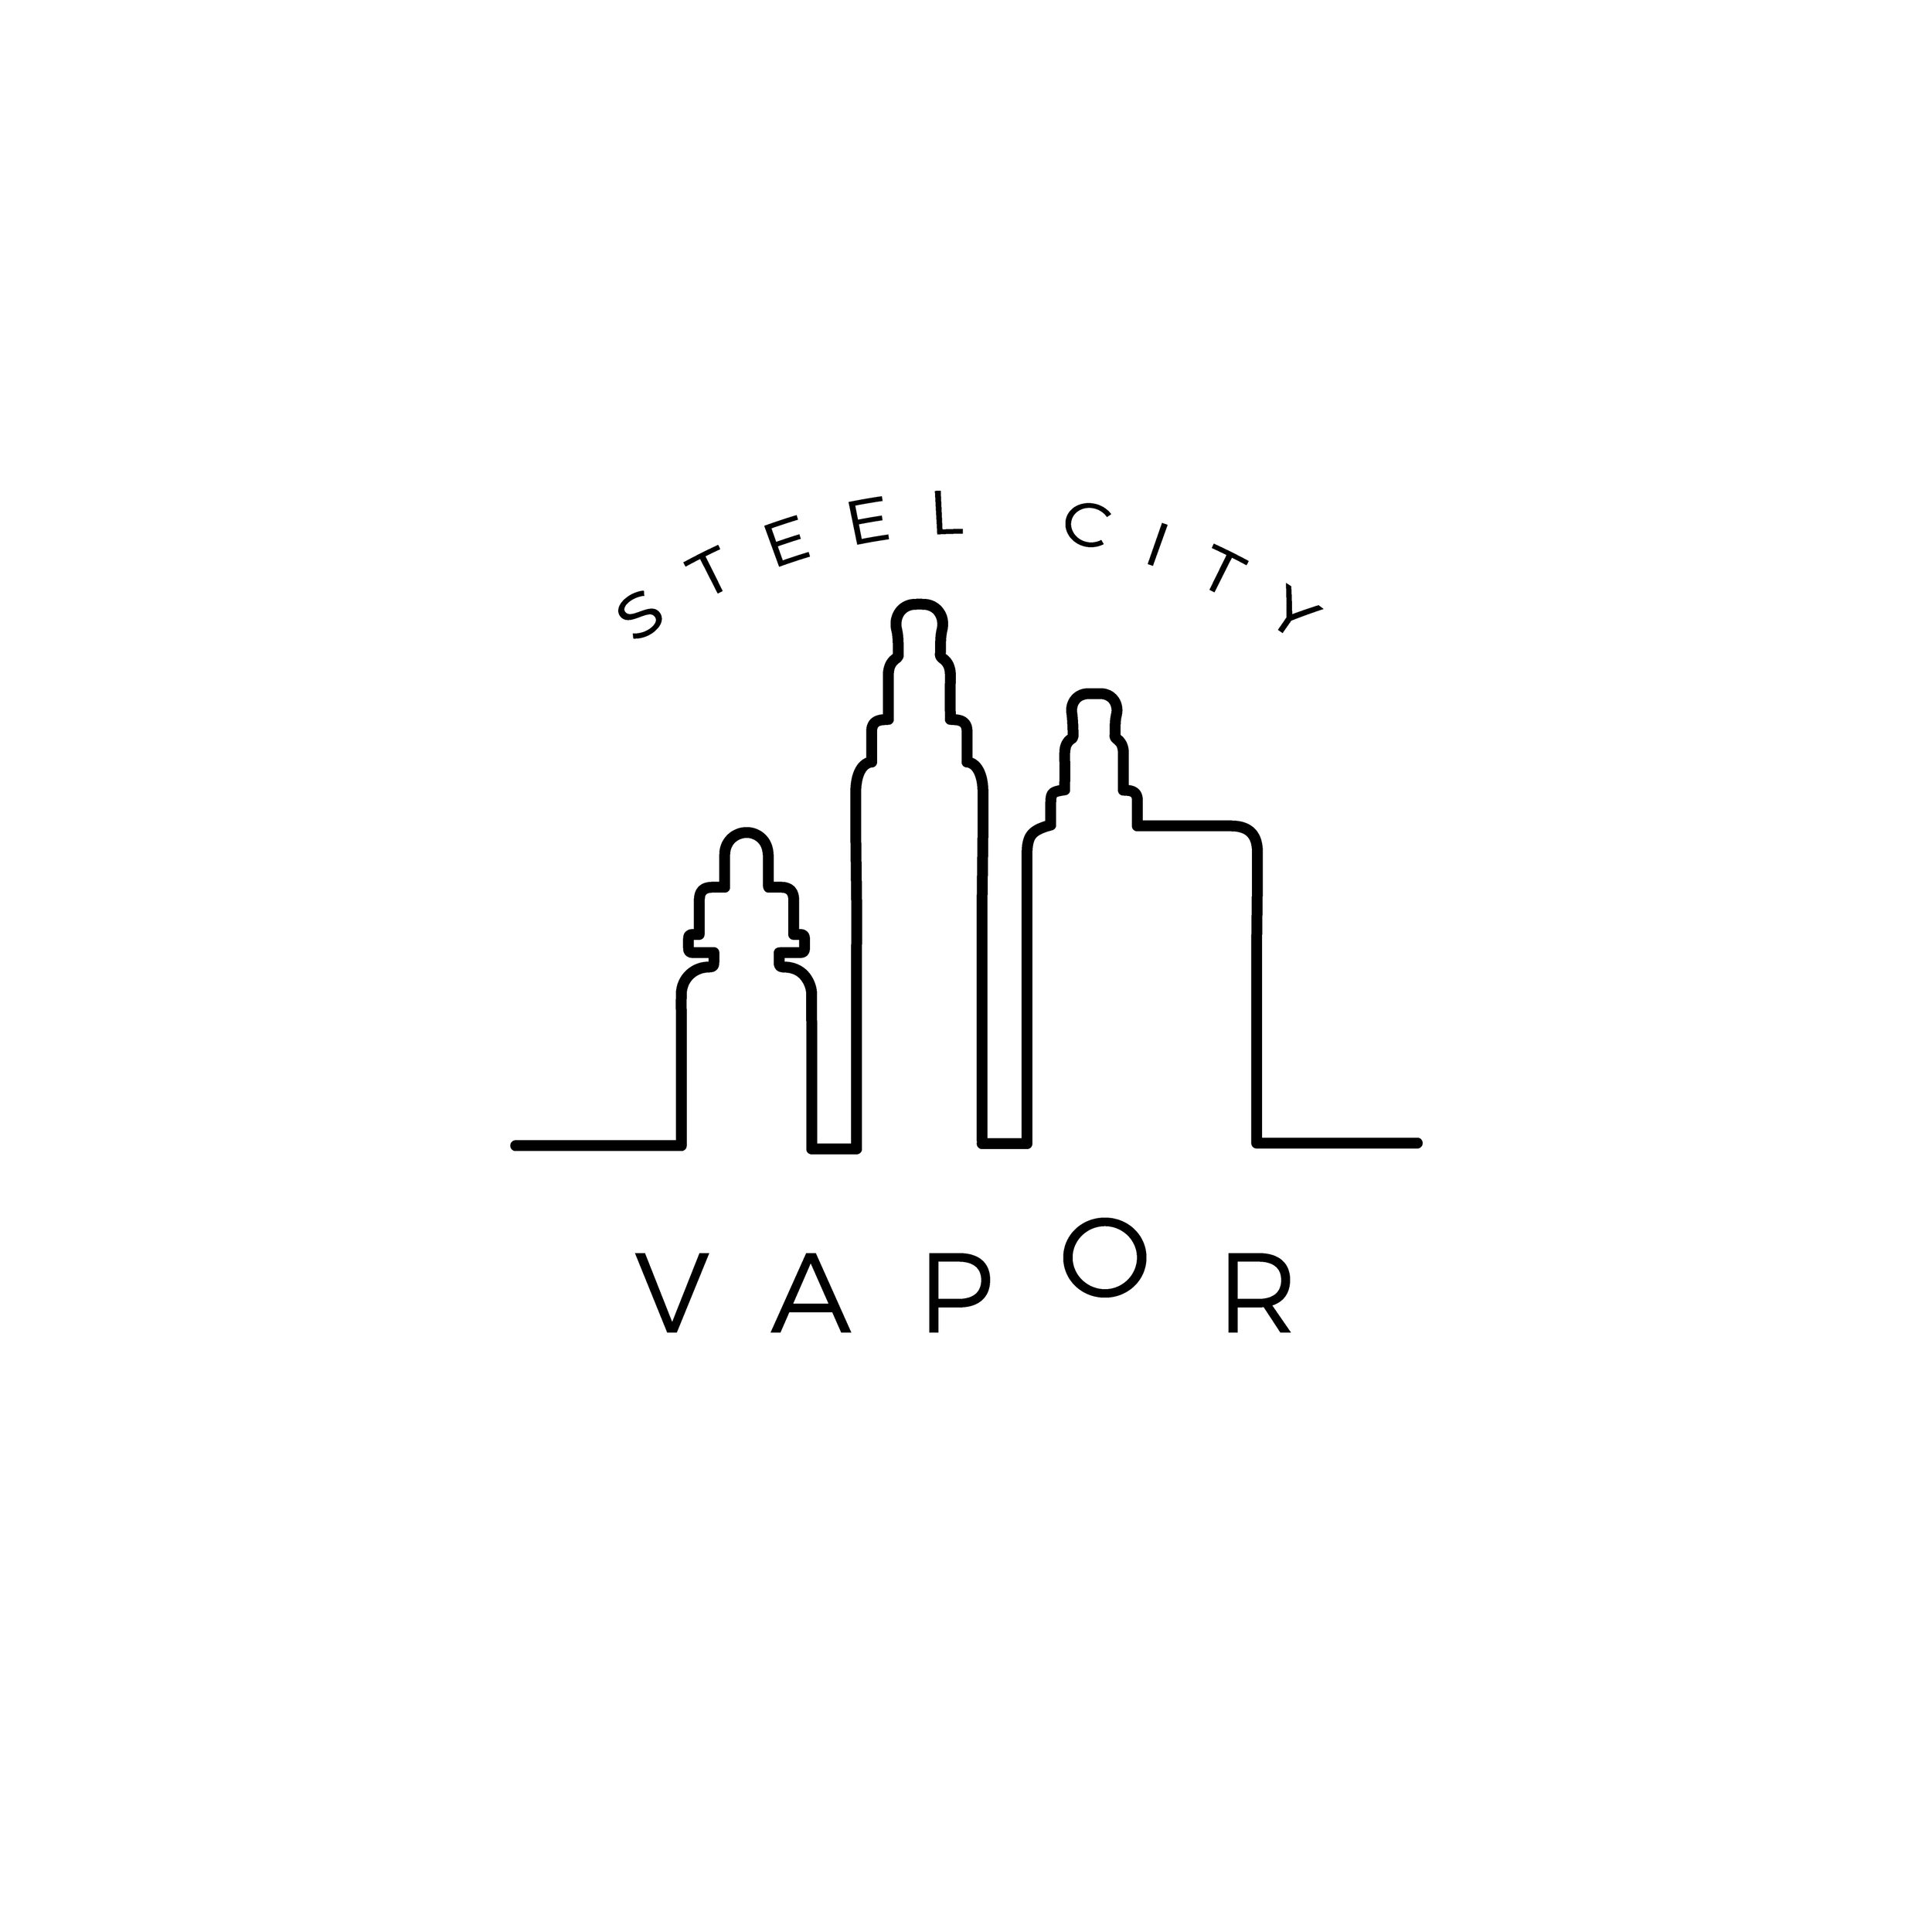 Steel-City-VaporLogoWebsite.jpg